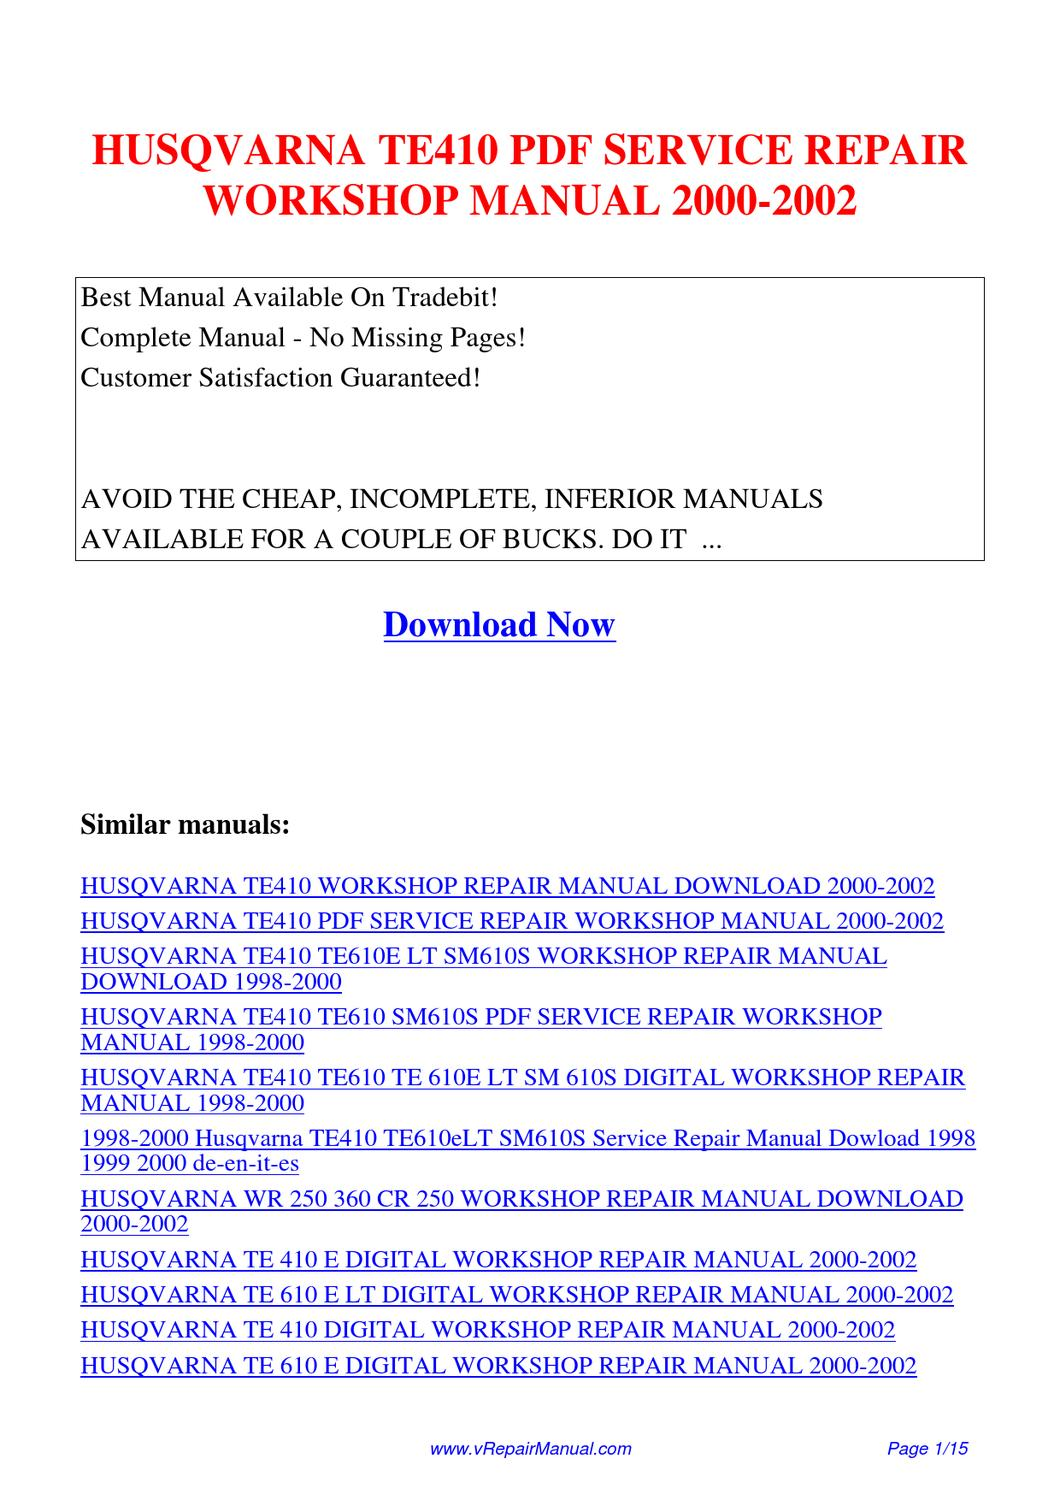 HUSQVARNA_TE410_SERVICE_REPAIR_WORKSHOP_MANUAL_2000-2002 by Huang Luan -  issuu